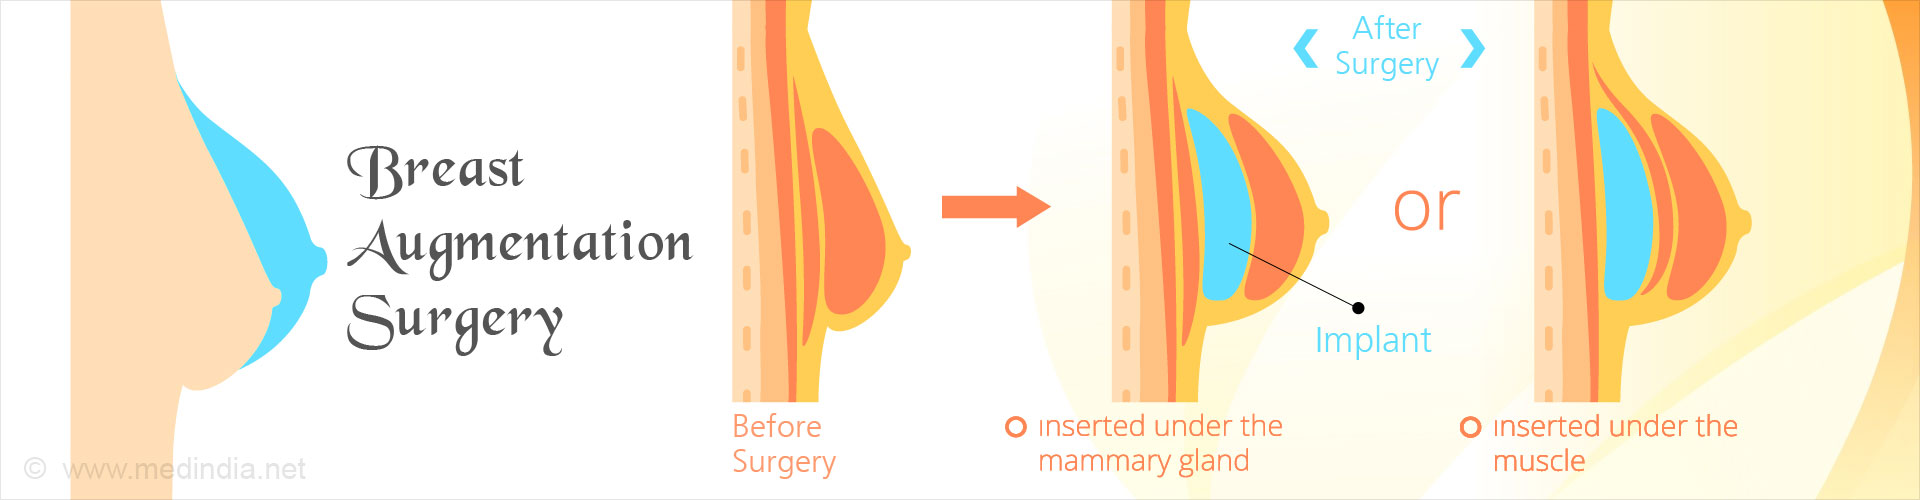 Breast Augmentation Surgery - Types, Indications, Surgical Procedure,  Complications